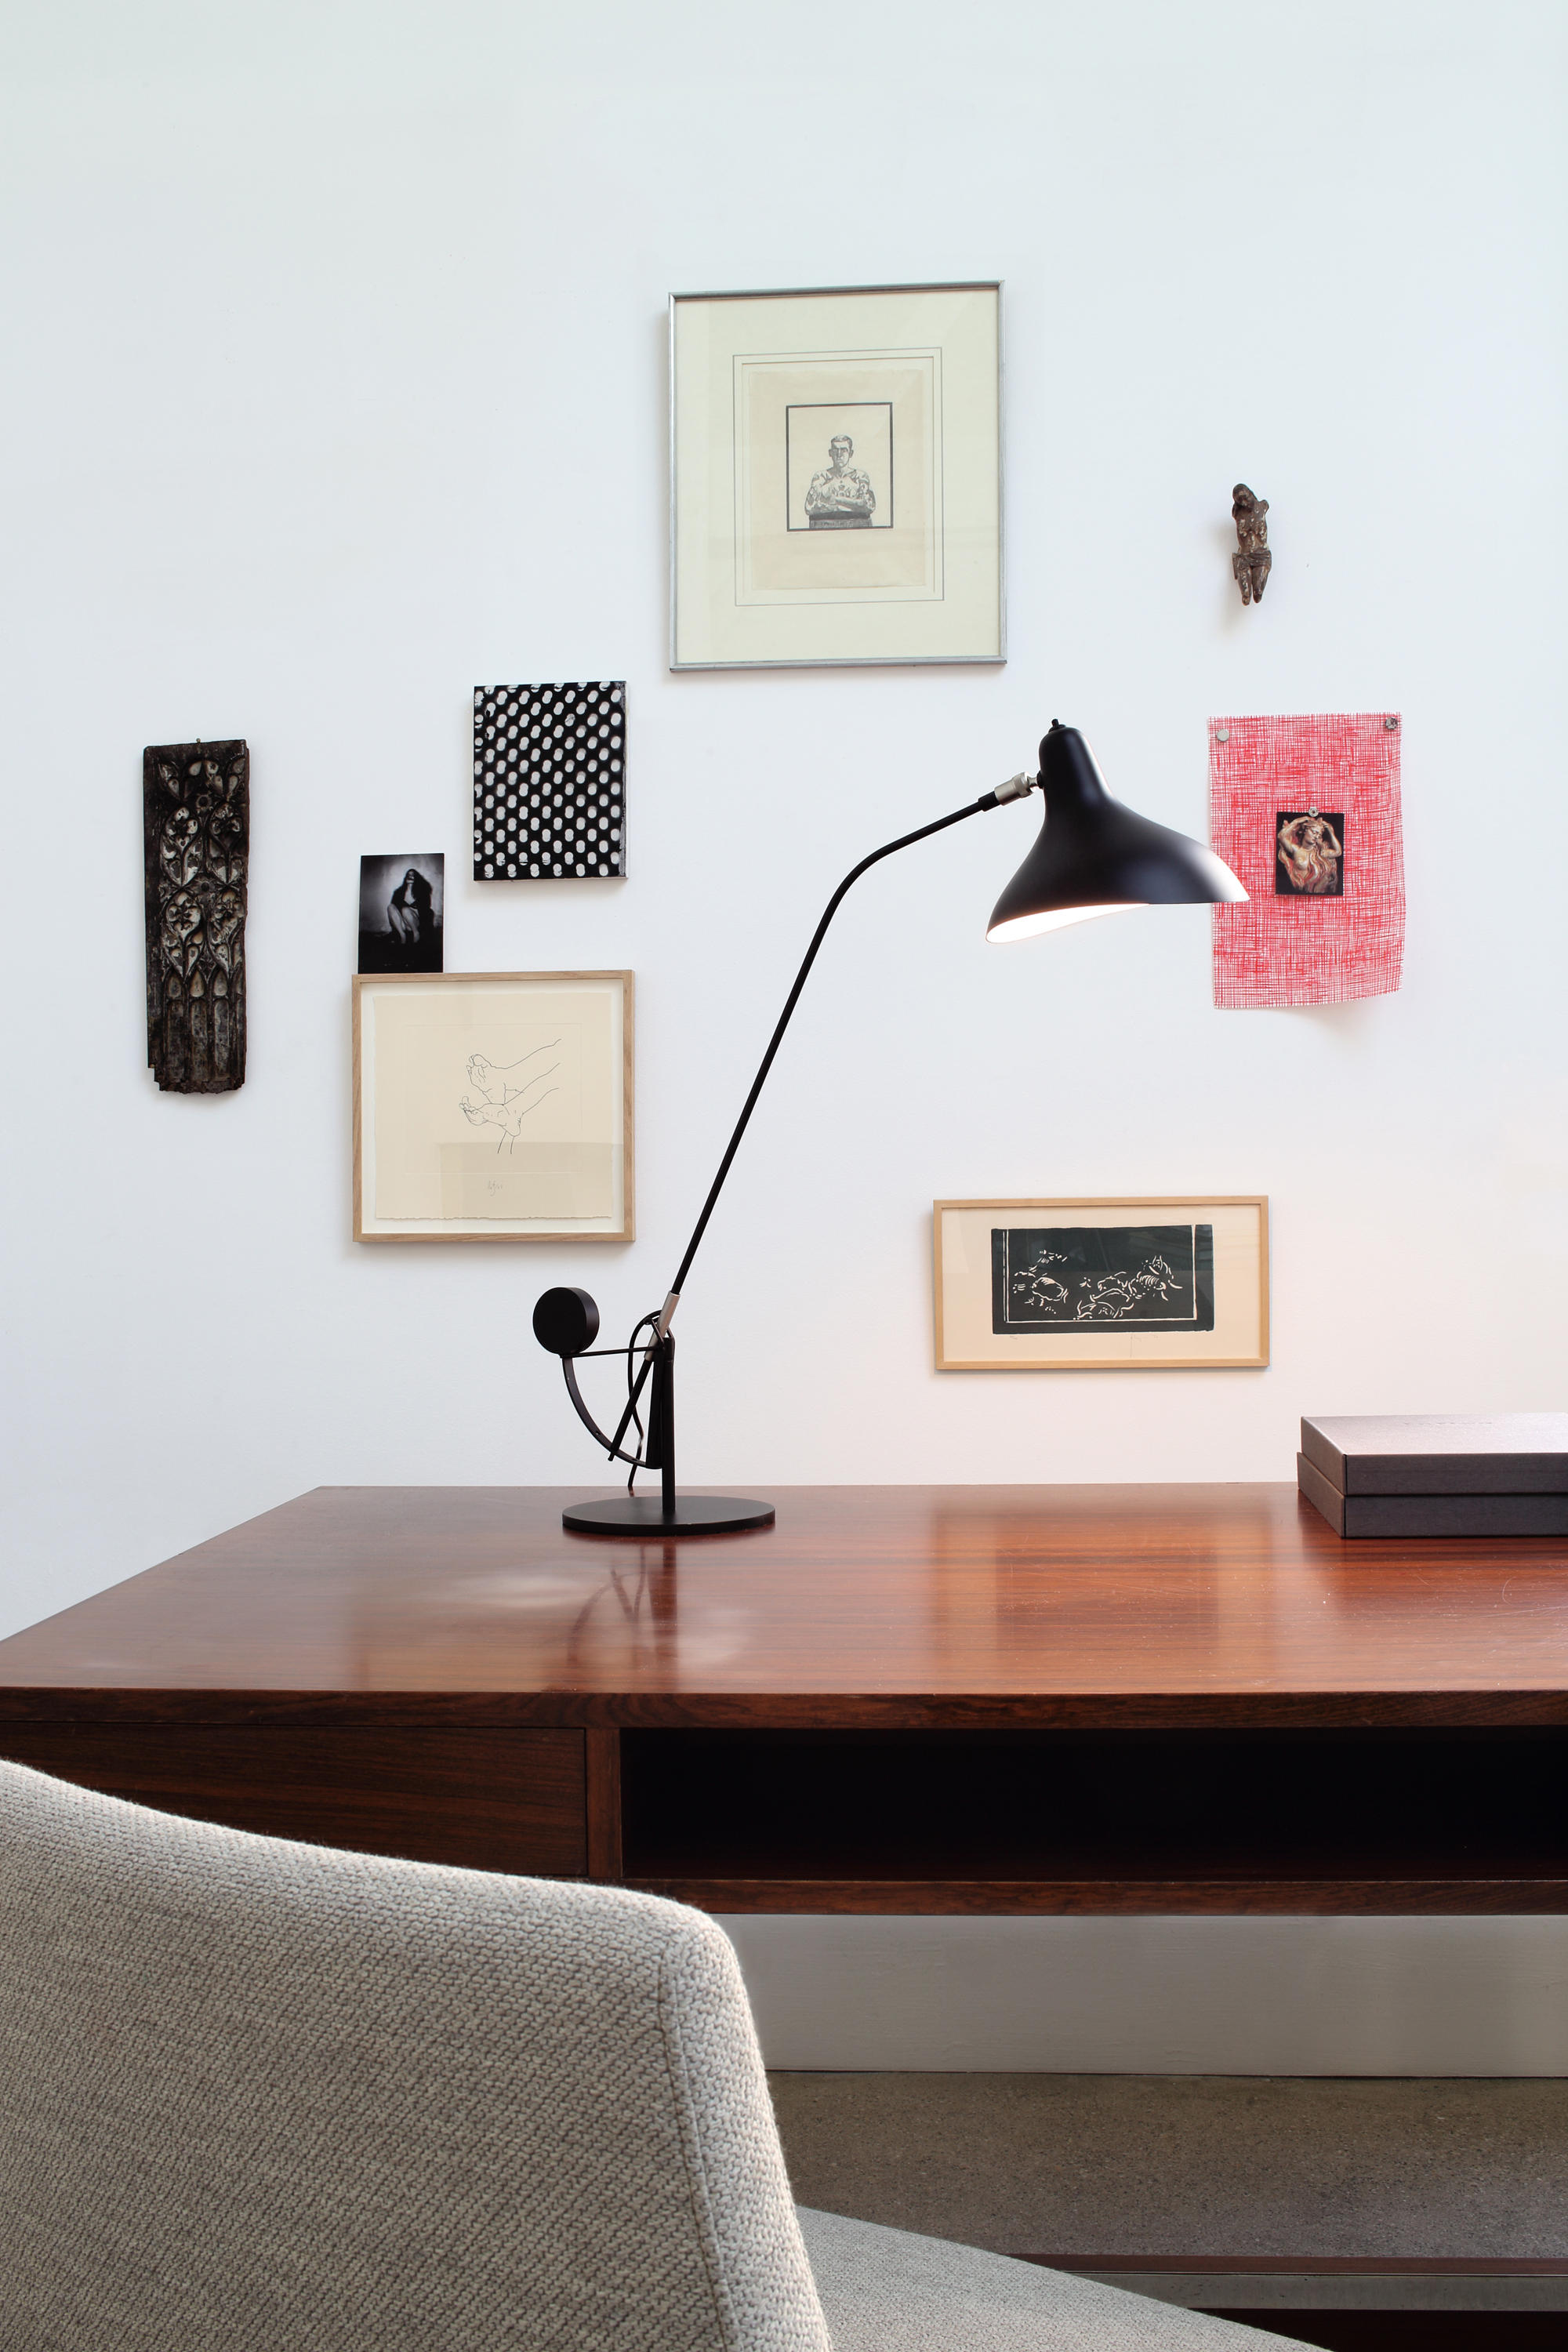 mantis bs5 sw bl general lighting from dcw ditions. Black Bedroom Furniture Sets. Home Design Ideas